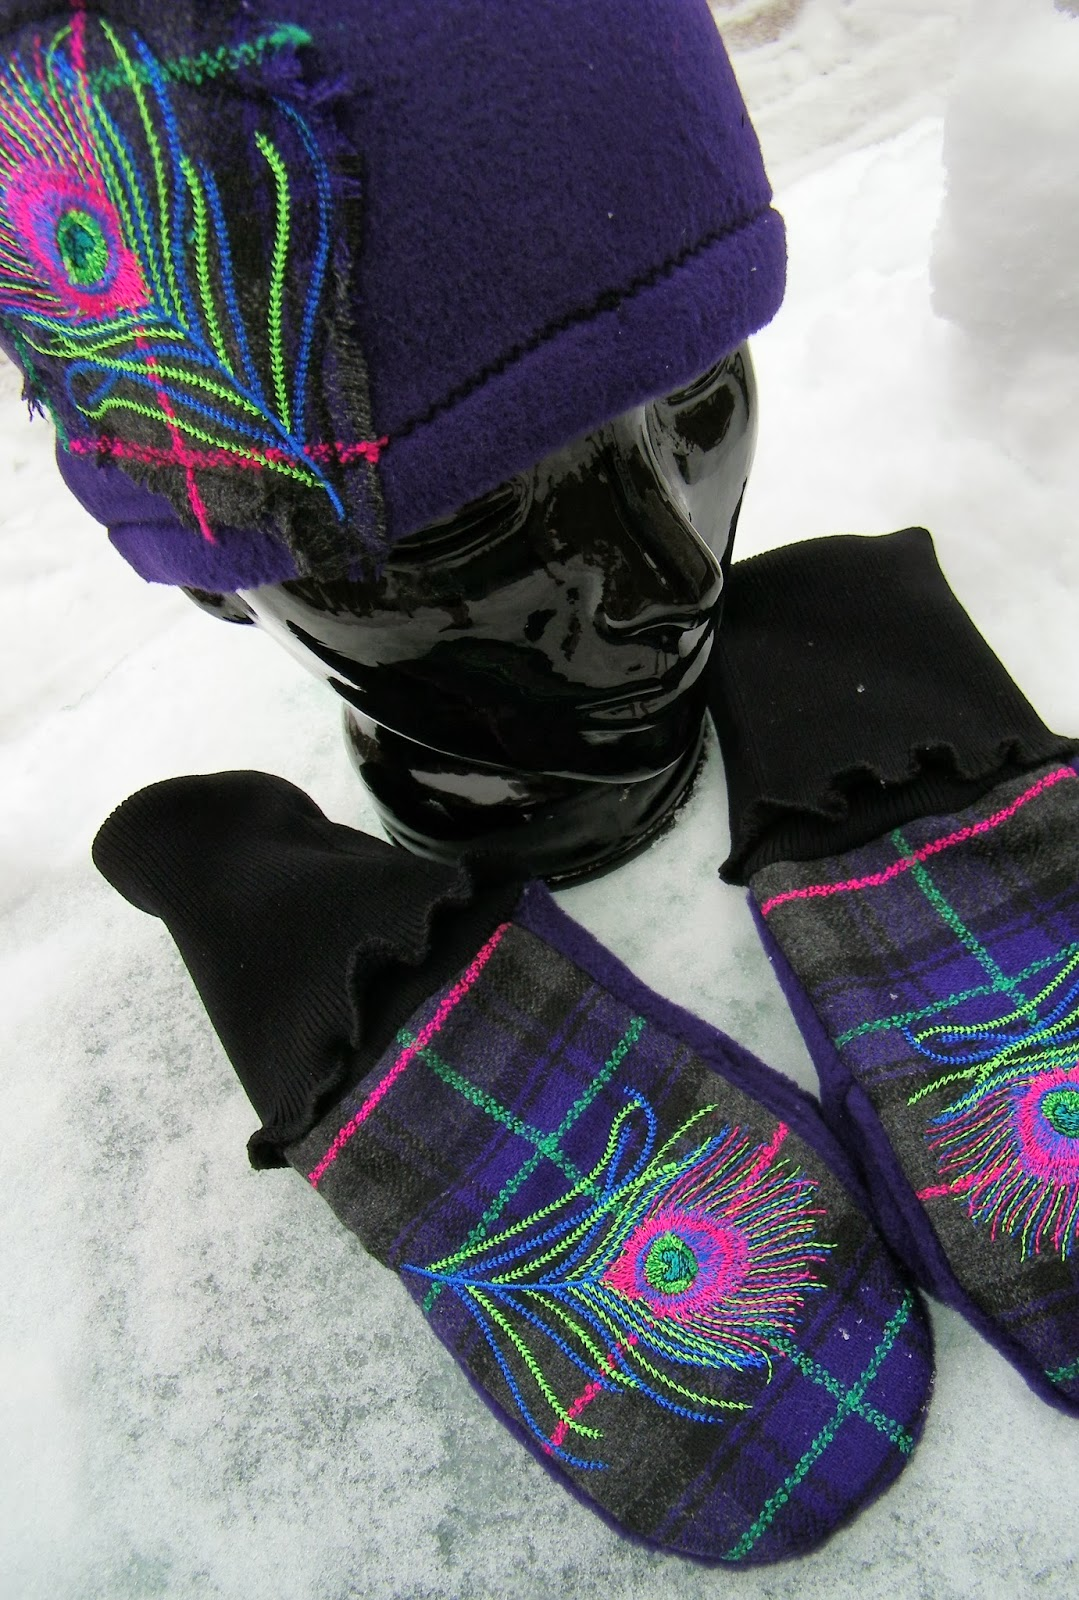 The peacock feather really shines on these wonderful mittens and matching hat from Carolyn Cagle's Strikke Knits!